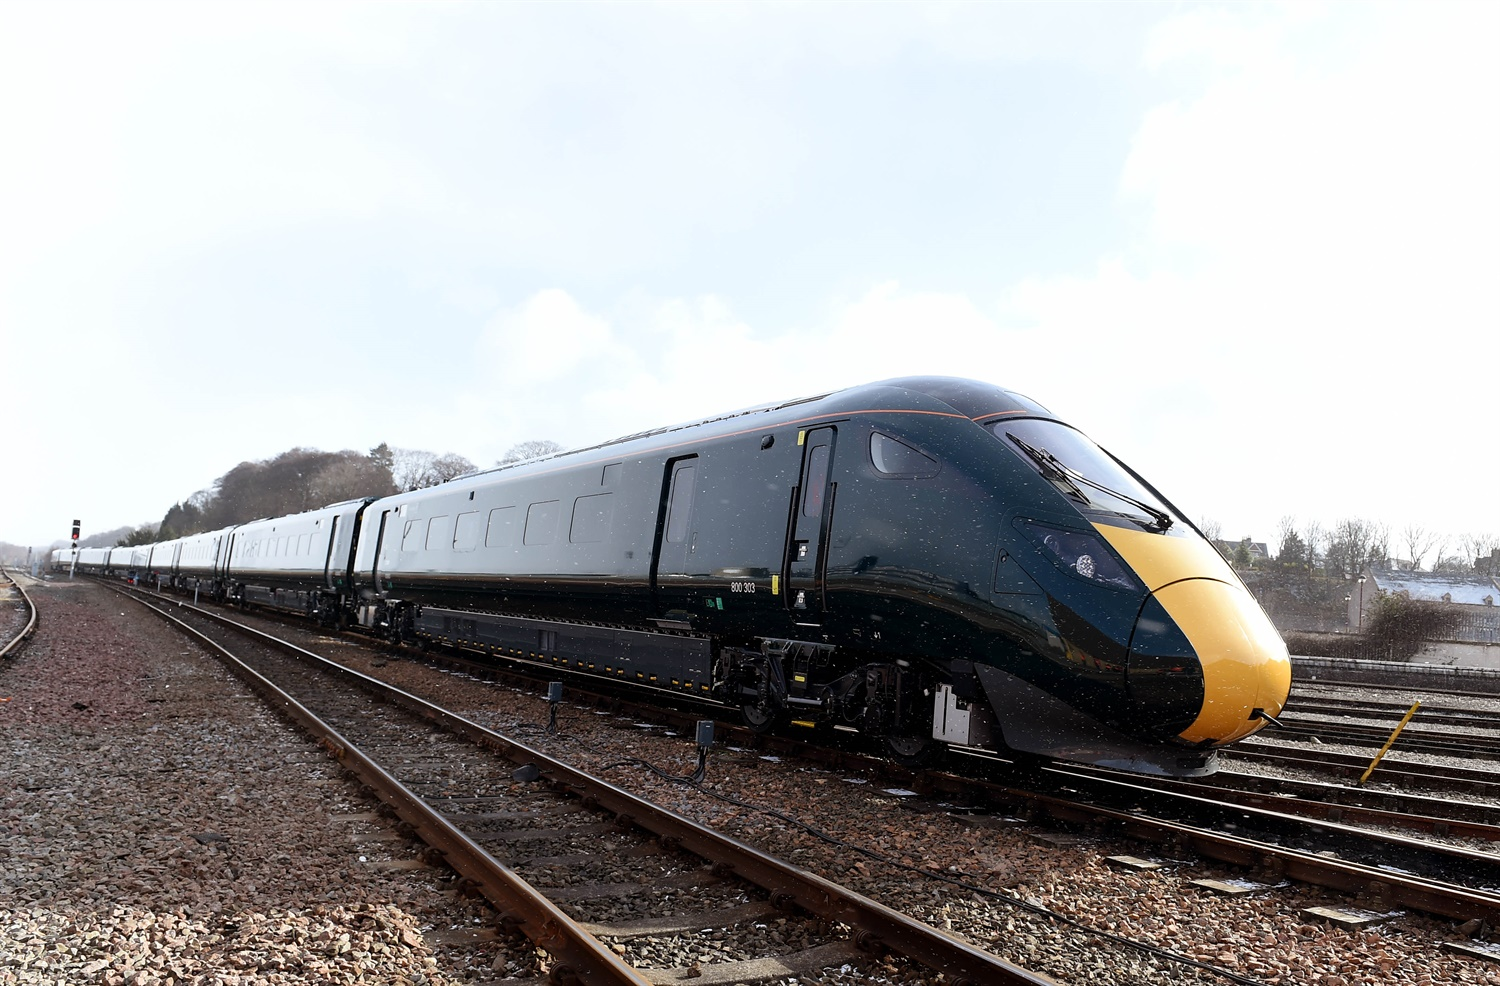 New Intercity Express train reaches Inverness depot for testing